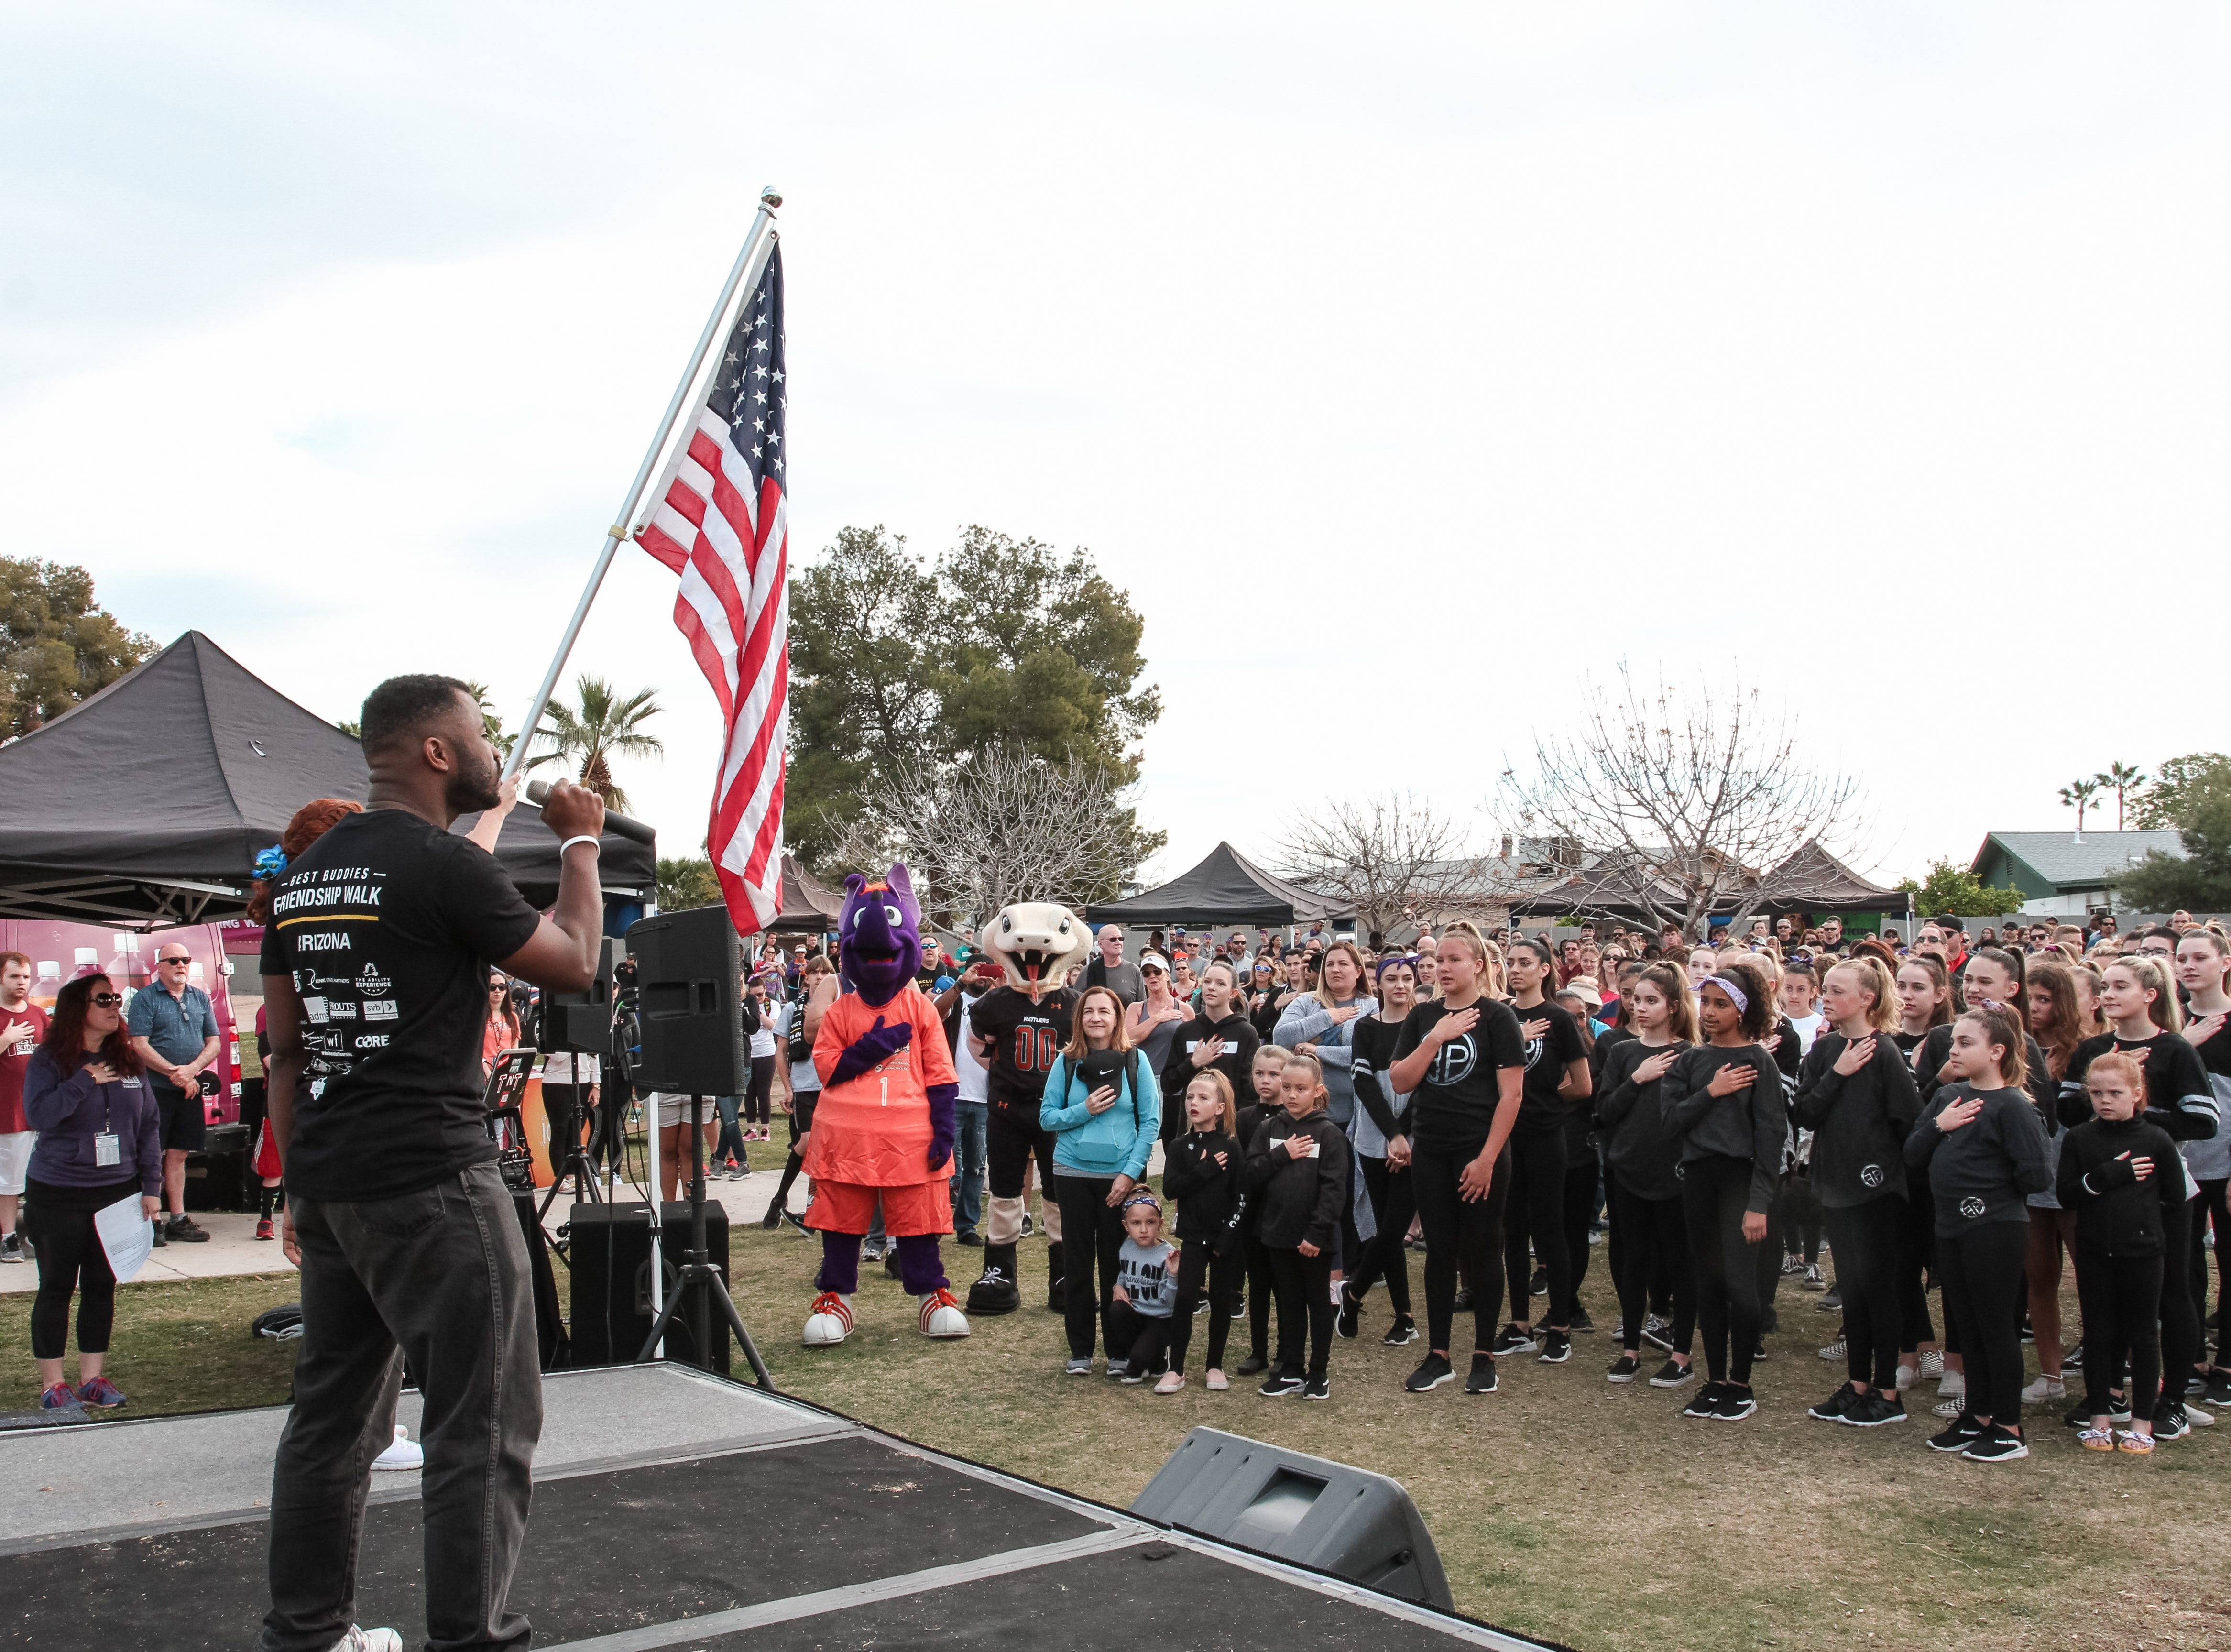 Justin Toler sings the National Anthem at The Best Buddies Friendship Walk at Kiwanis Park in Tempe on March 23, 2019.